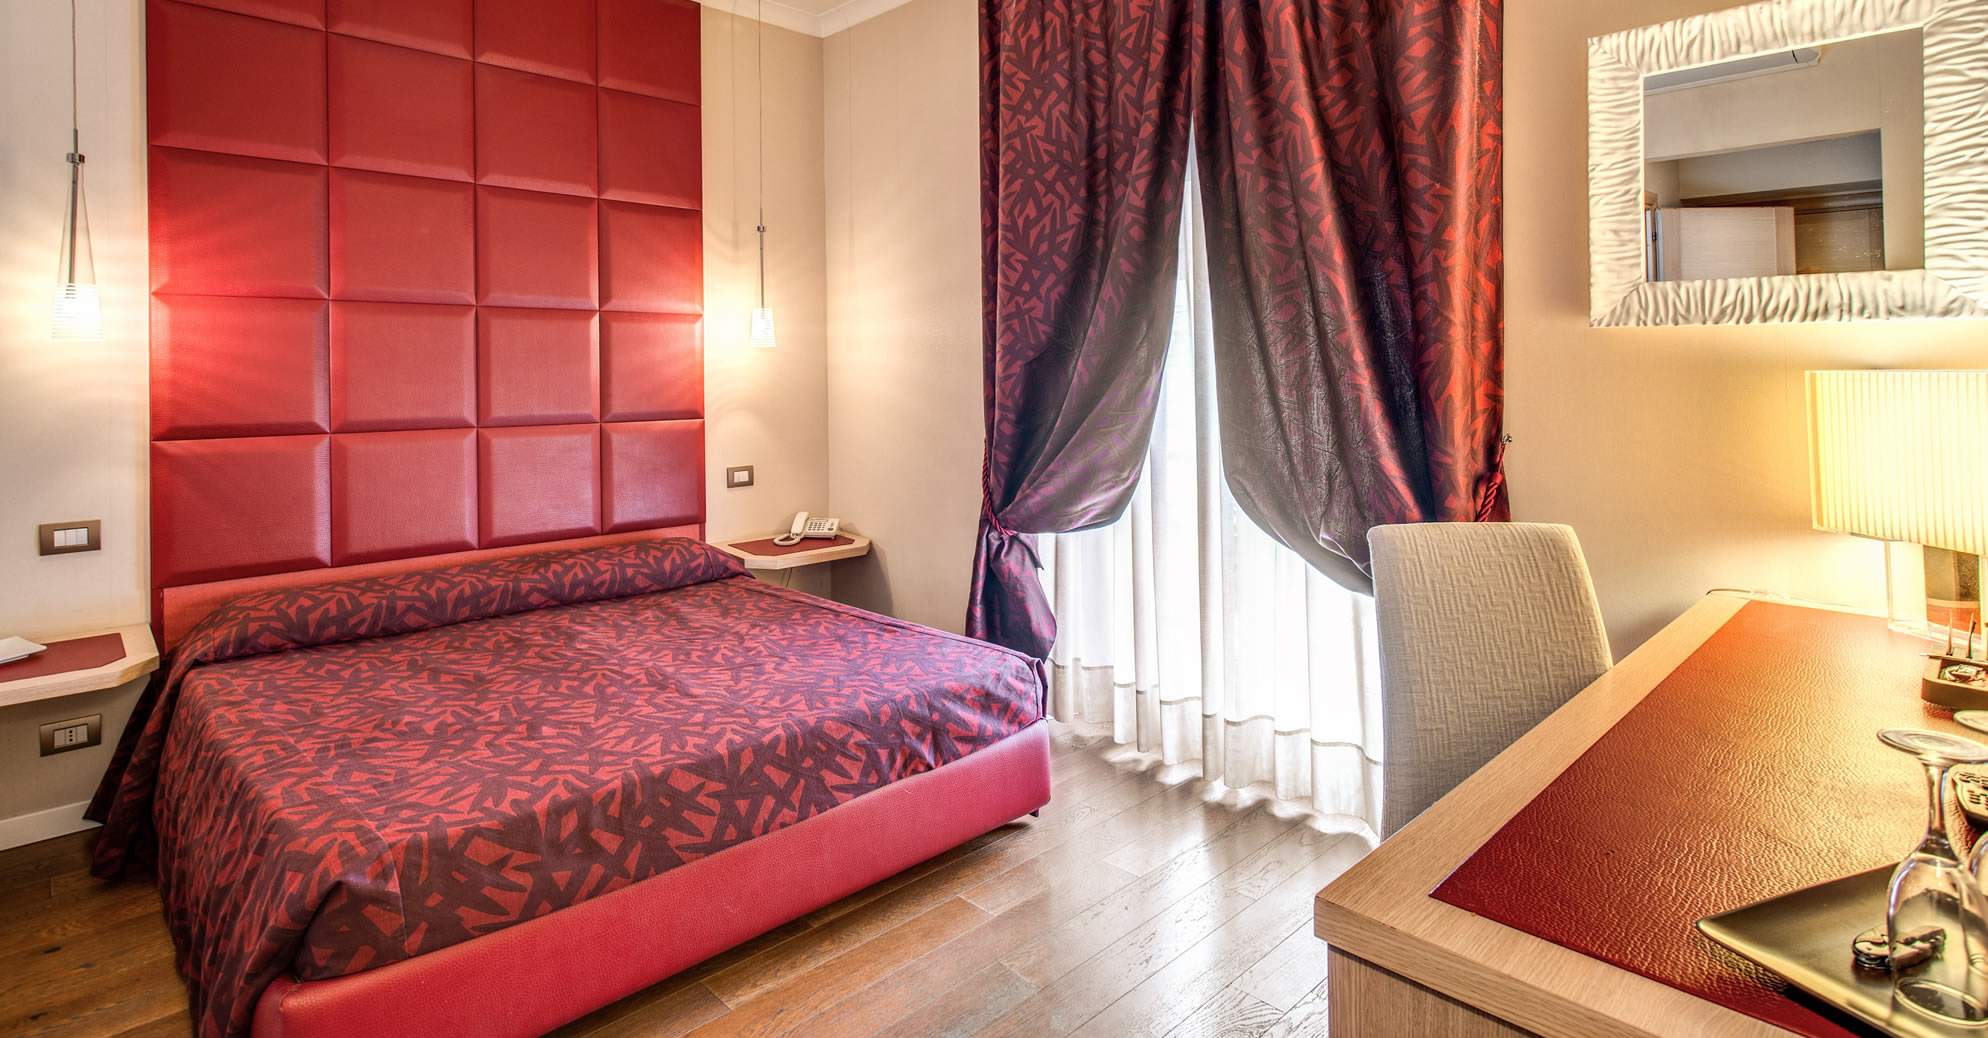 Boutique guesthouse roma official site four star city for The boutique hotel